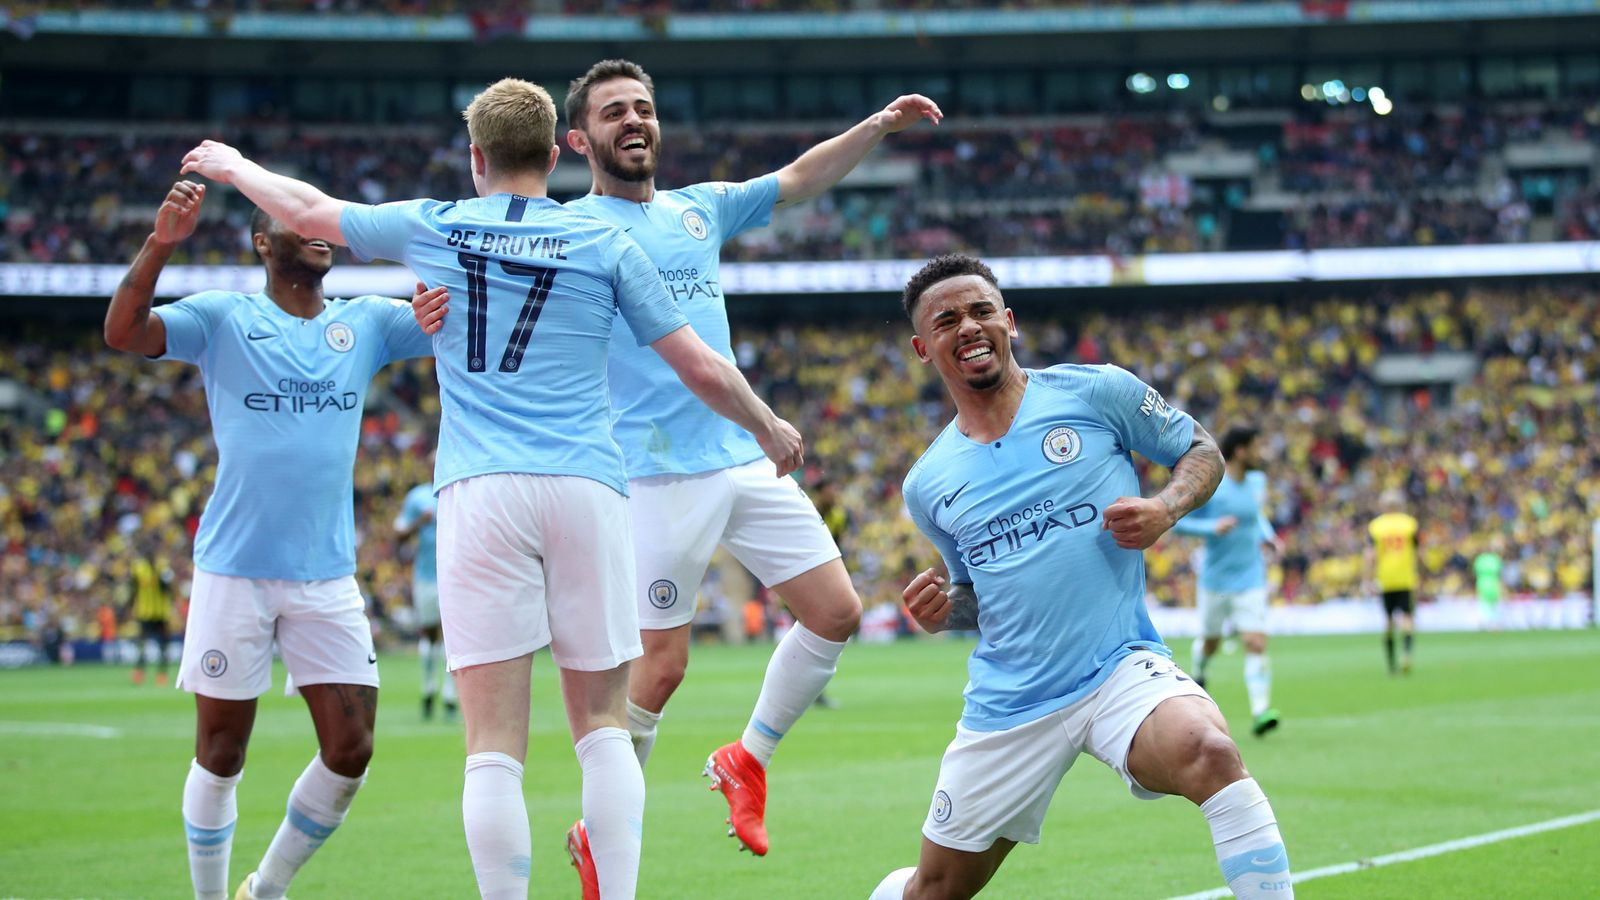 Manchester City's treble shows their dominance and it will ...